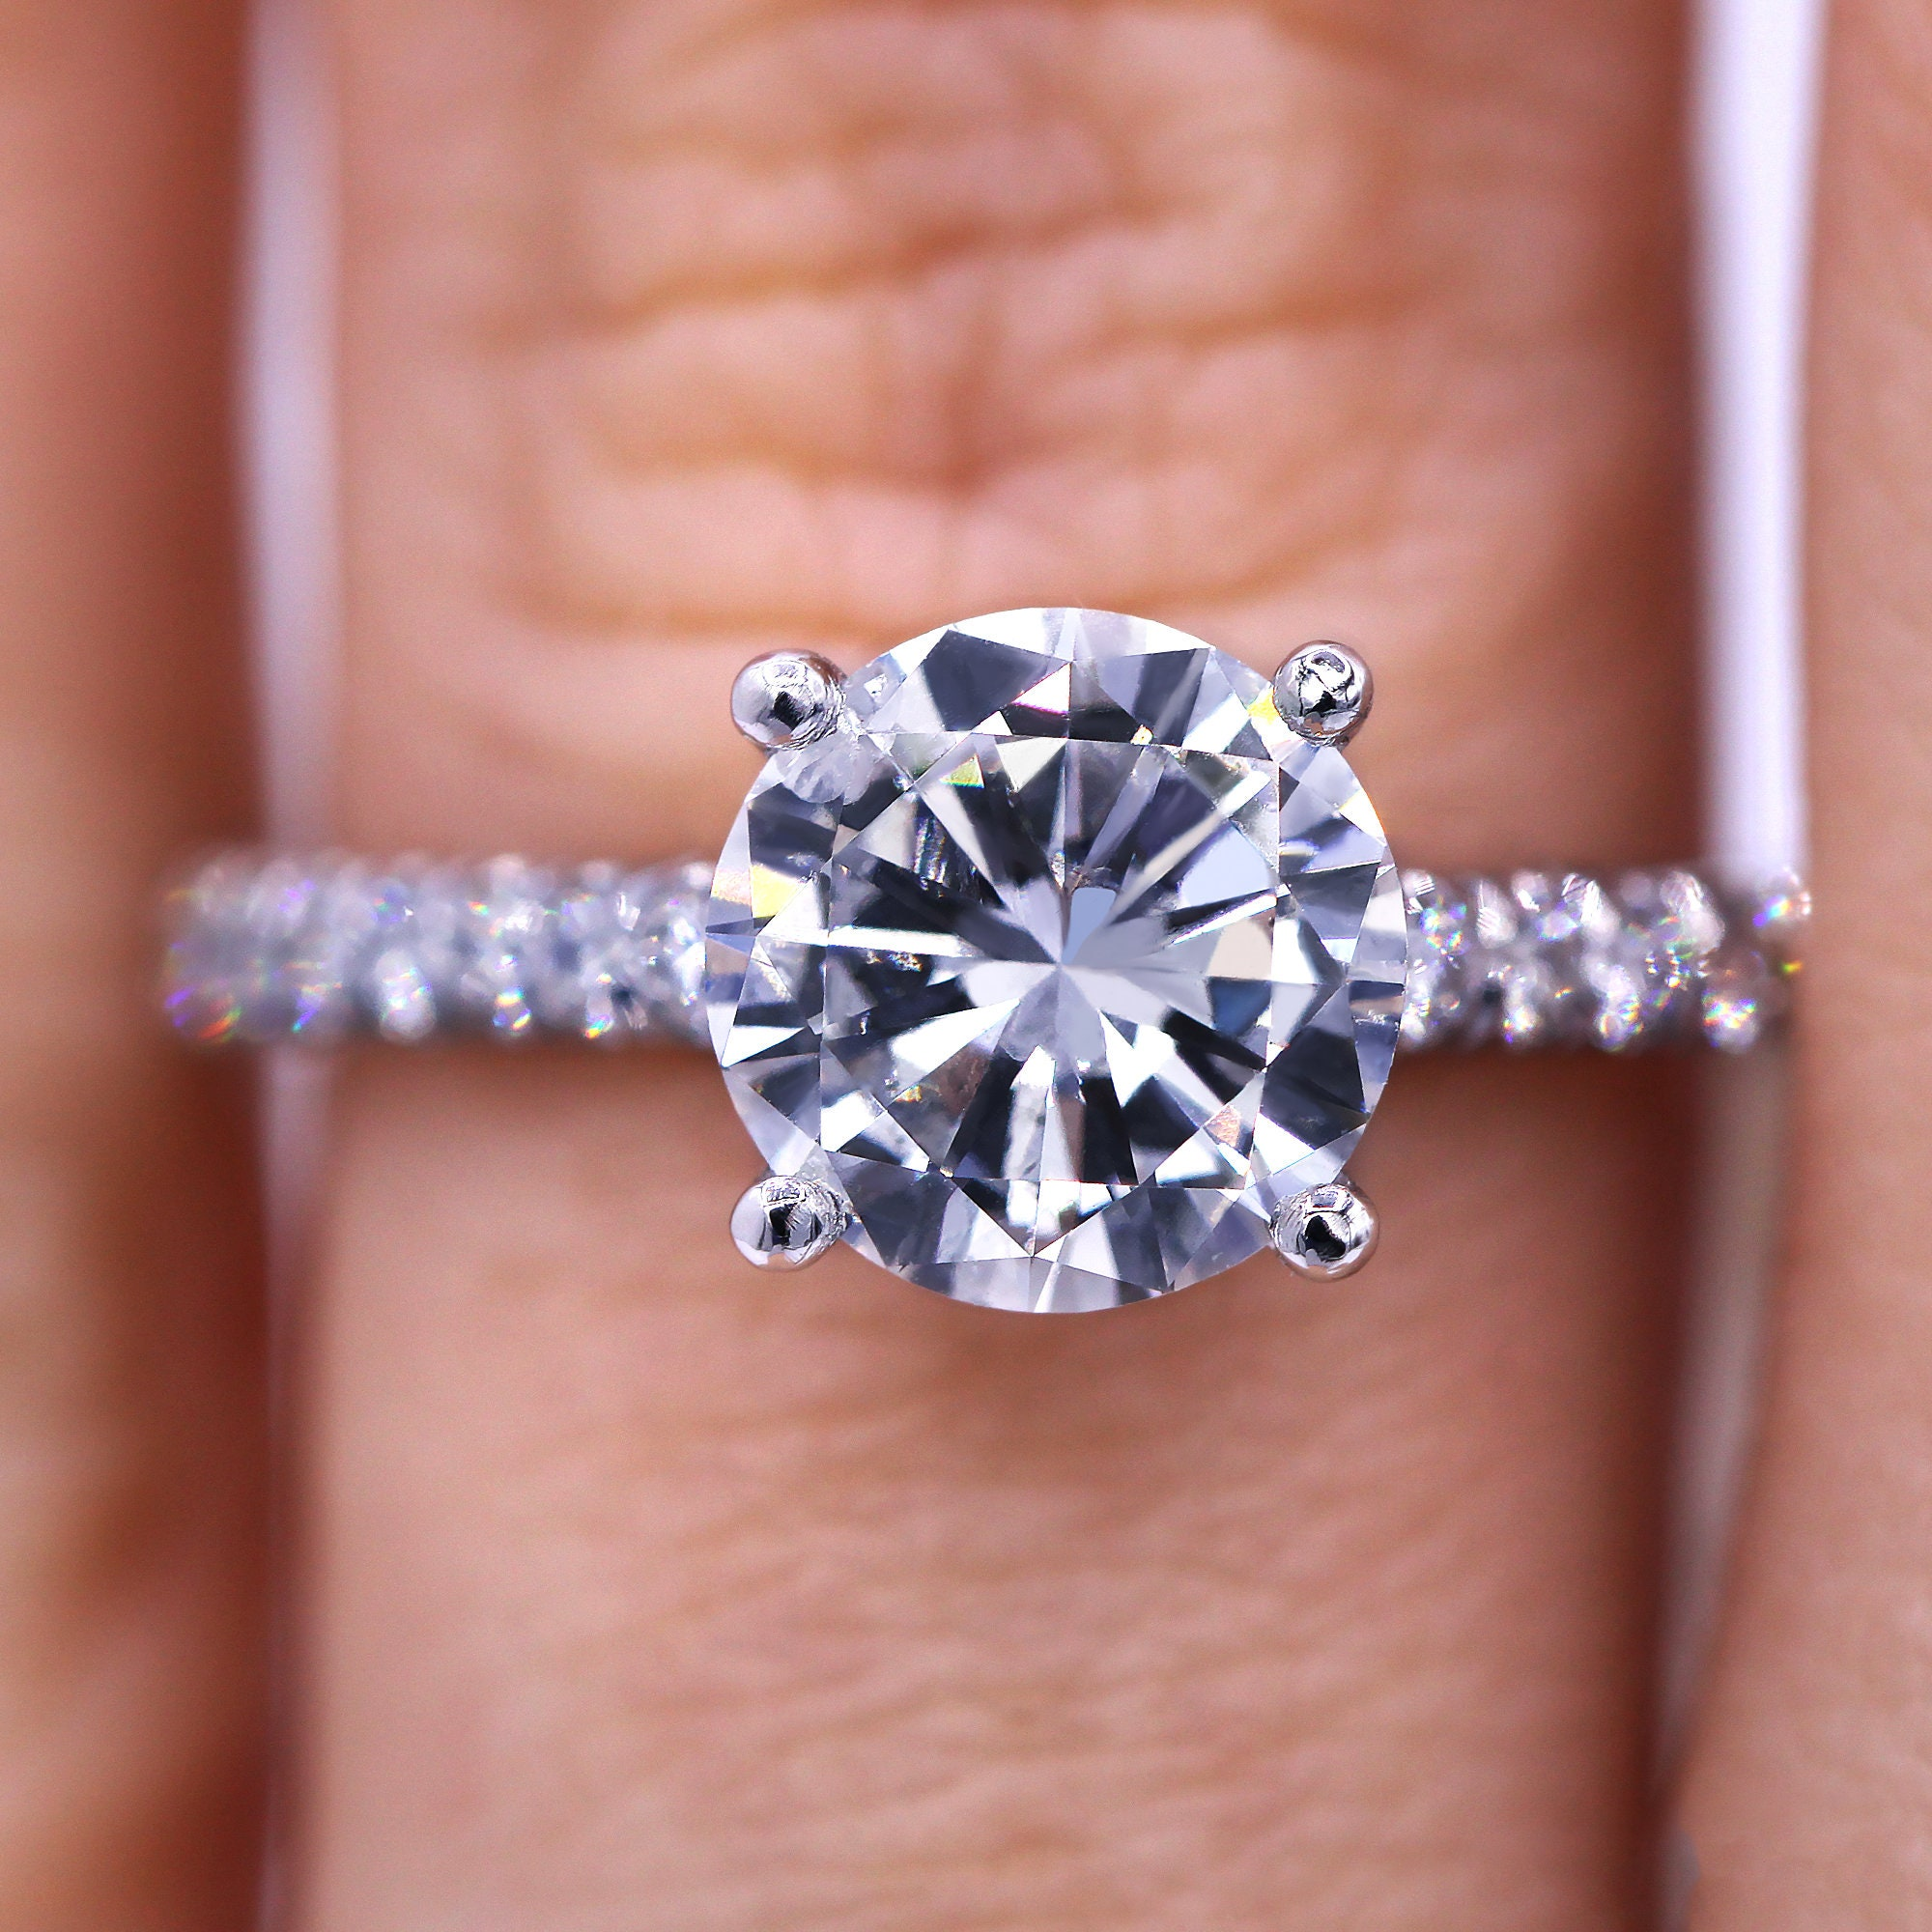 Stunning 1.67 carat round shaped diamond engagement ring